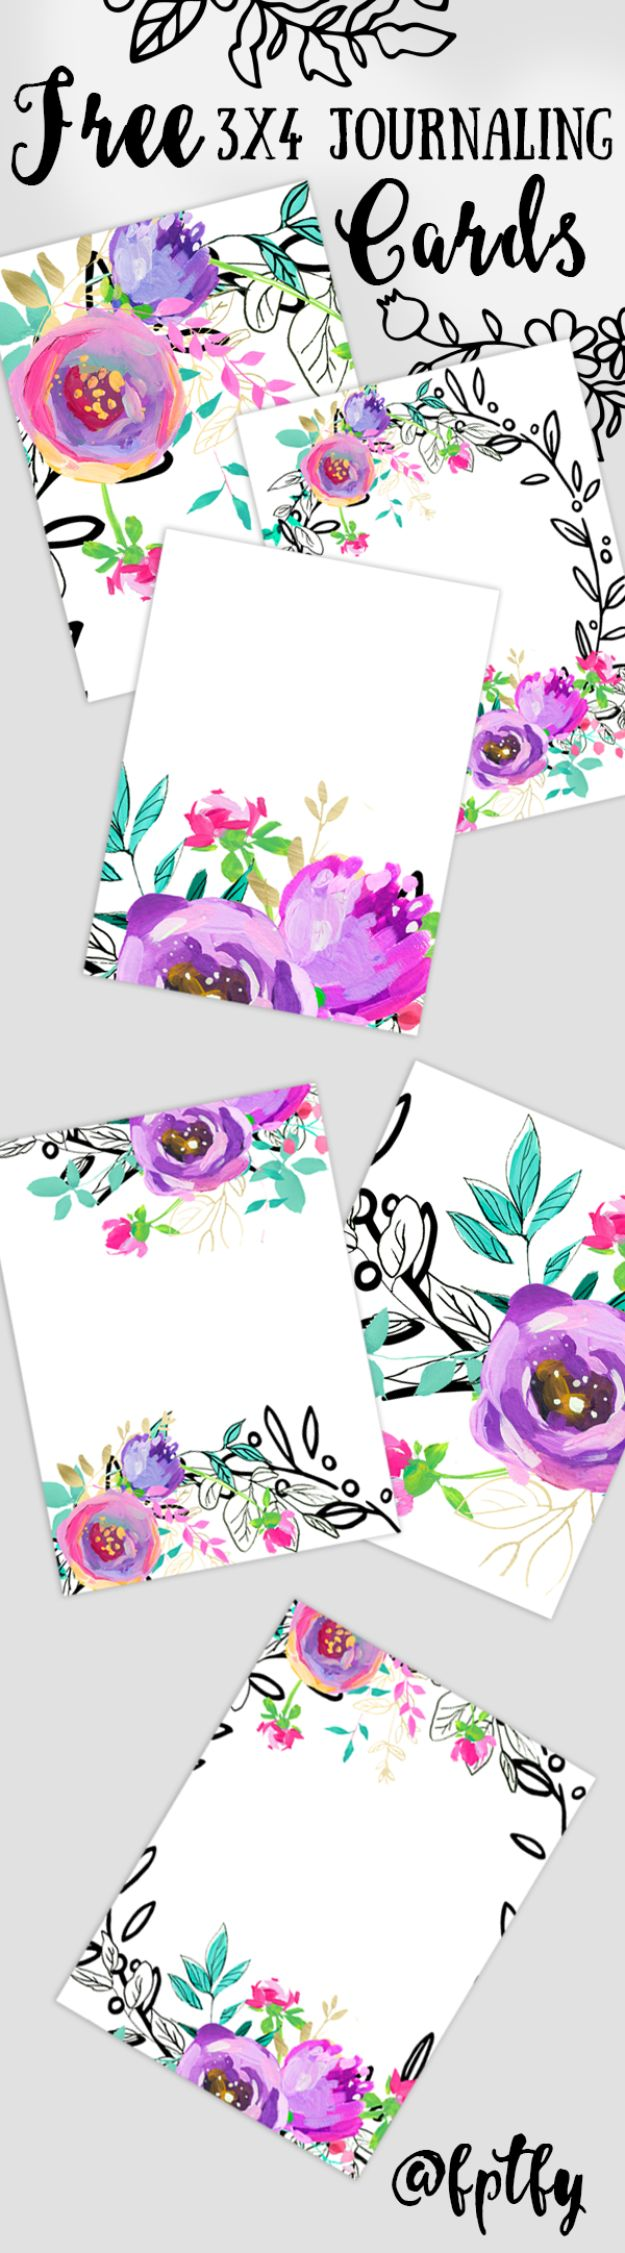 Best Free Printables for Crafts - Free Printable Journaling Cards - Quotes, Templates, Paper Projects and Cards, DIY Gifts Cards, Stickers and Wall Art You Can Print At Home - Use These Fun Do It Yourself Template and Craft Ideas for Your Next Craft Projects - Cute Arts and Crafts Ideas for Kids and Adults to Make on Printer / Printable http://diyjoy.com/best-free-printables-crafts